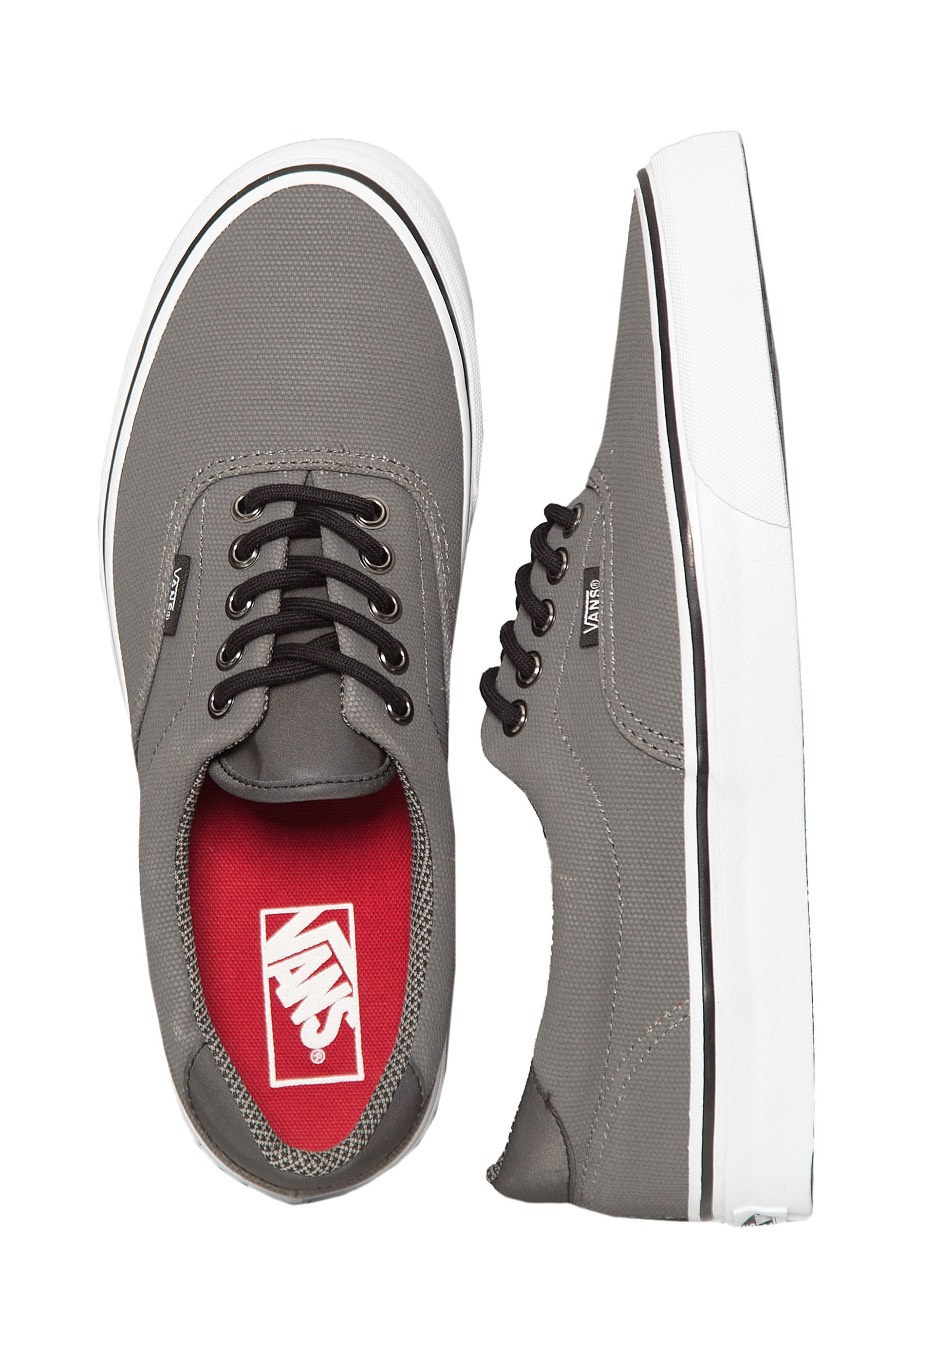 46f23c18b0015a Vans - Era 59 Reflective Pewter - Shoes - Impericon.com Worldwide